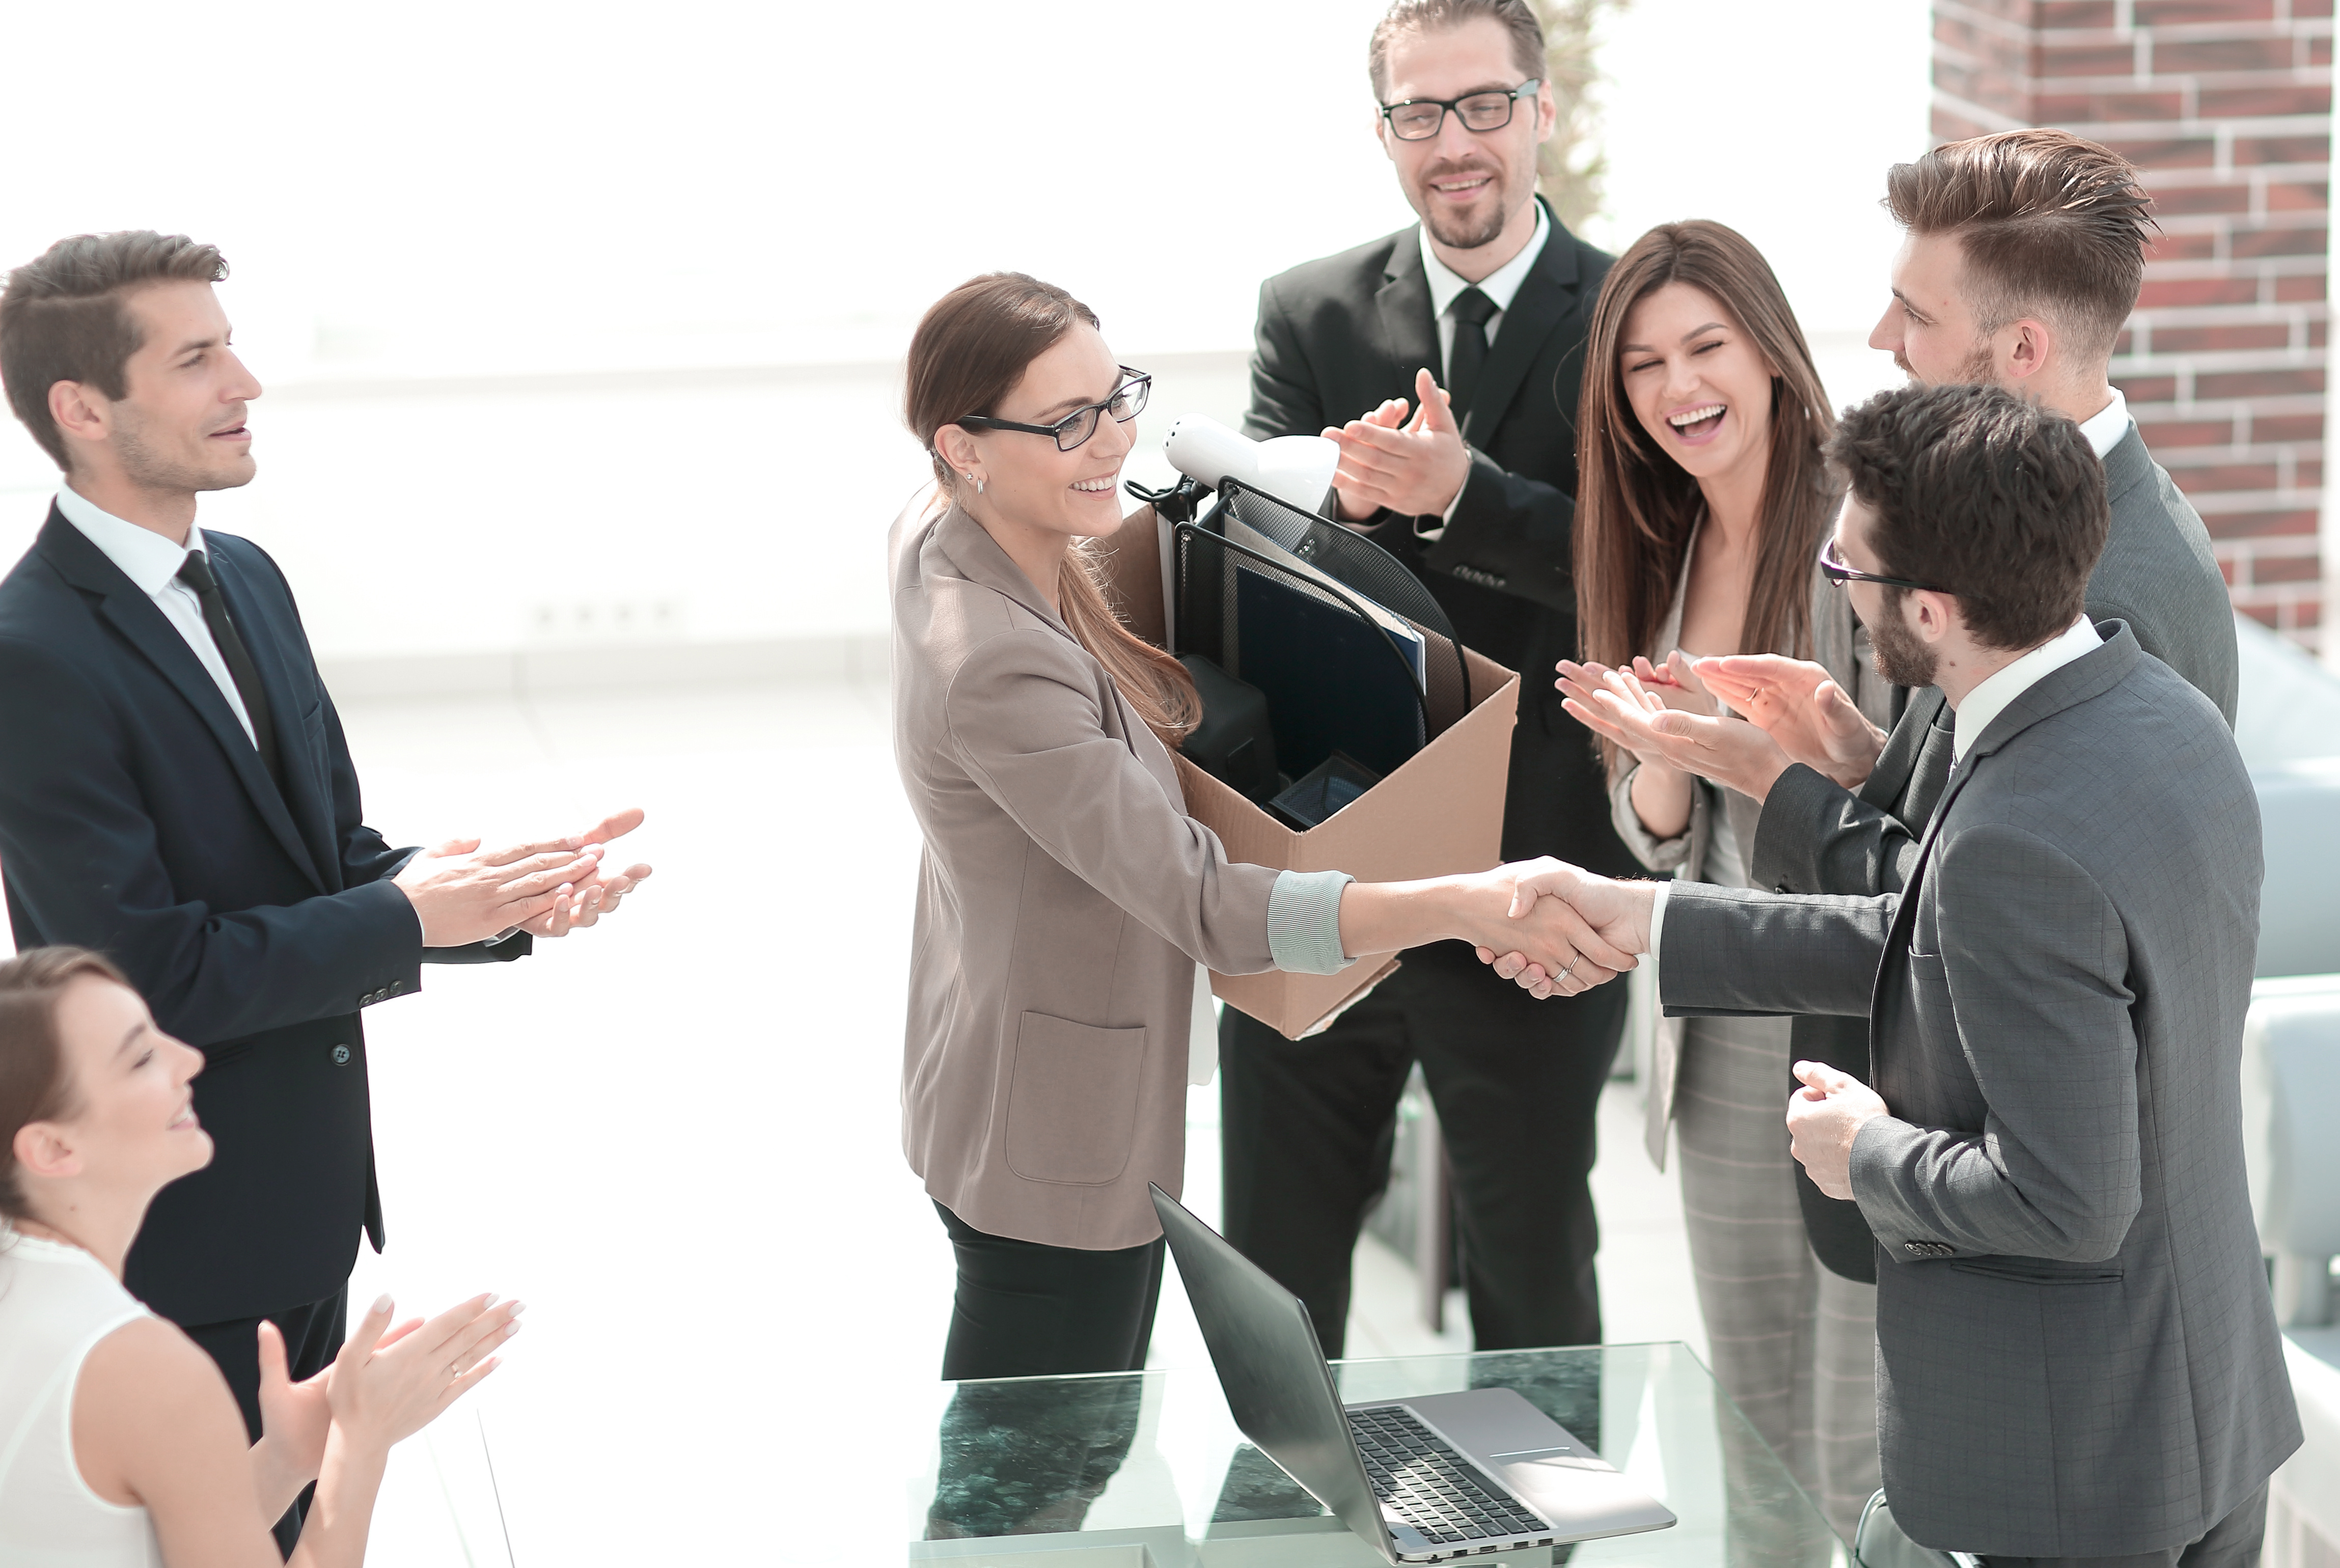 Boss shaking hands with a new employee: employee turnover